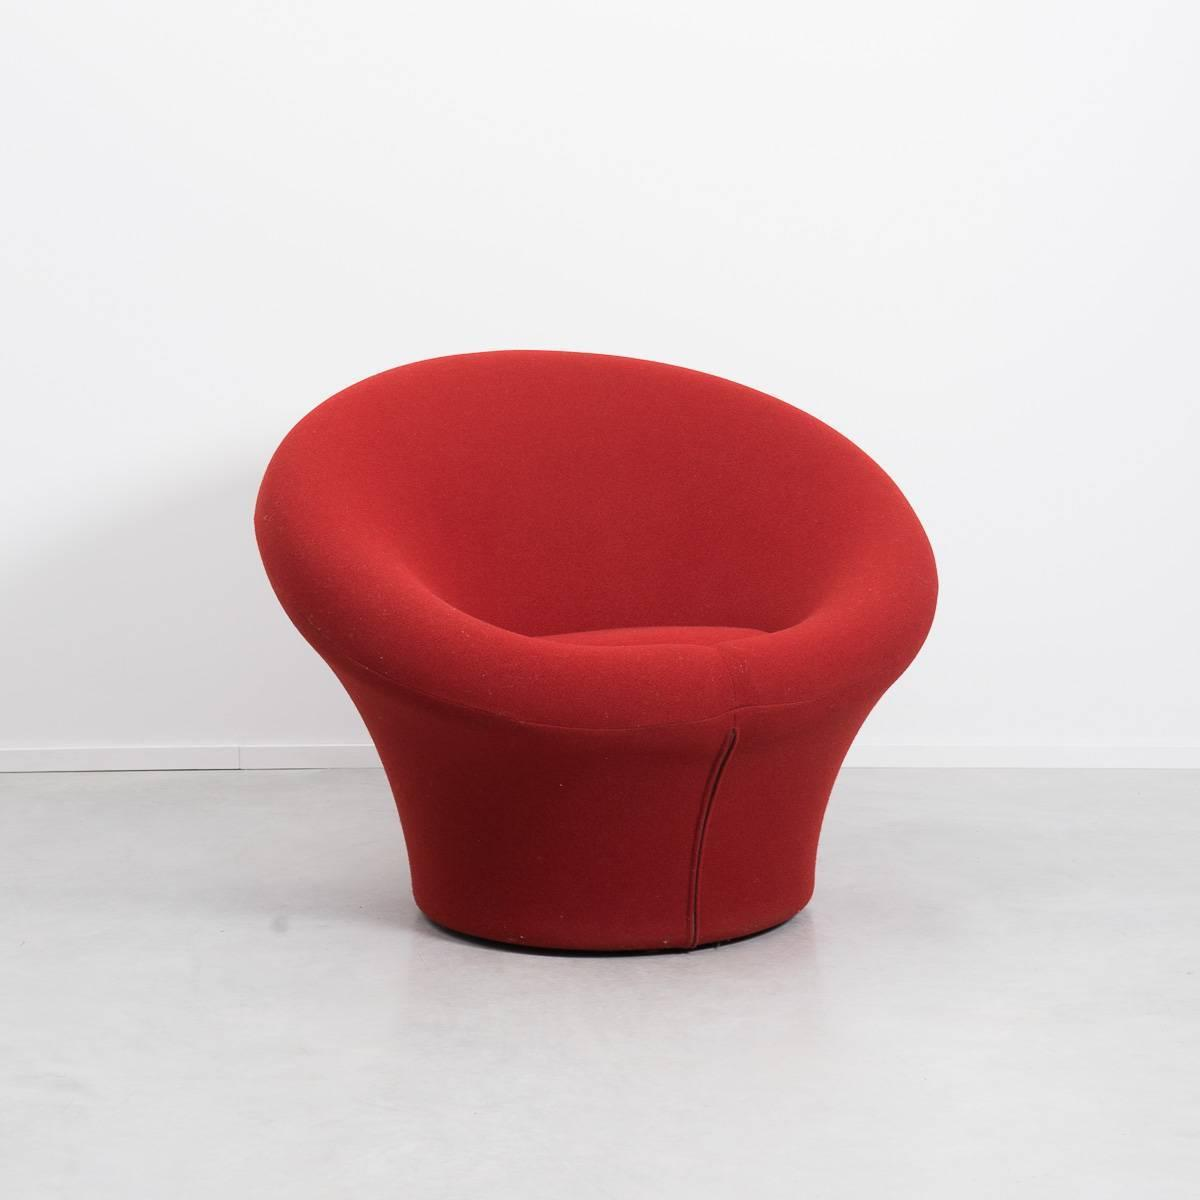 z shaped high chair and a half recliner canada red pierre paulin mushroom for artifort 1960 at 1stdibs